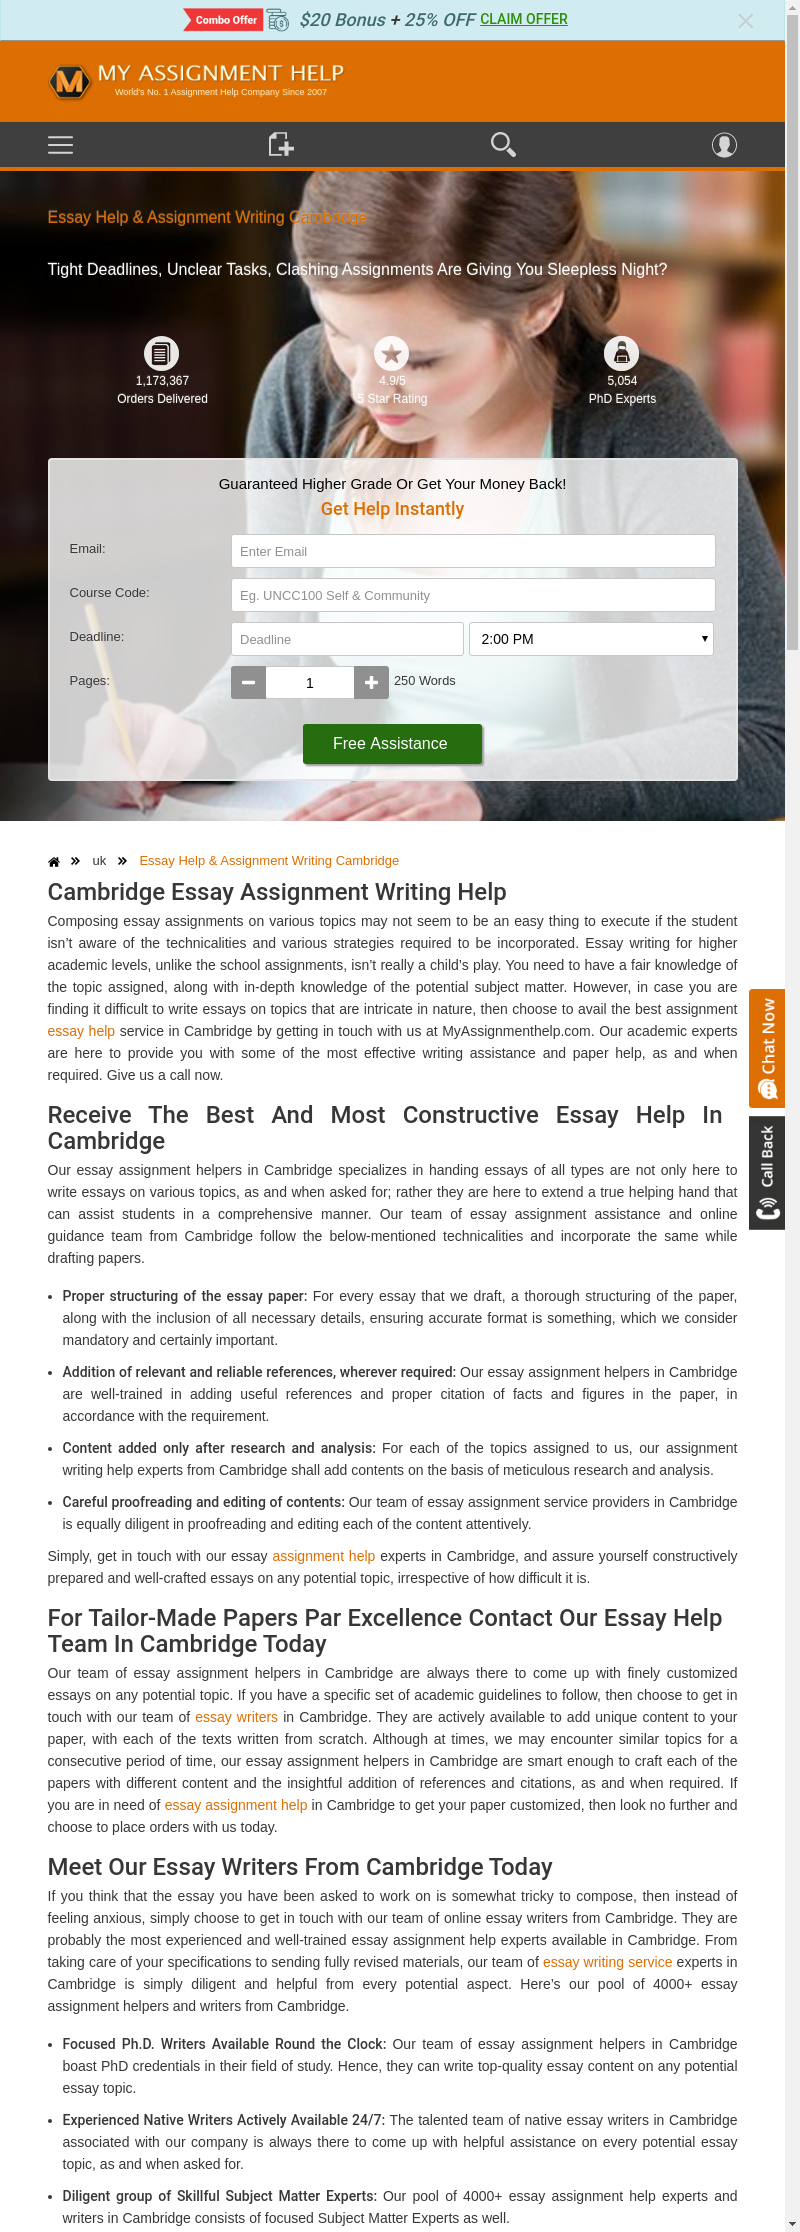 Examples Of Thesis Statements For Persuasive Essays  Helpneed Cambridge Essay Help  Cambridge Assignment Help Our British  Assignment Writers Provide Best Assignment  Essay Writing Help Service In  Uk Science And Religion Essay also How To Write An Application Essay For High School Mix  Cambridge Essay Writing Help  Cambridge Assignment Writing Help Learn English Essay